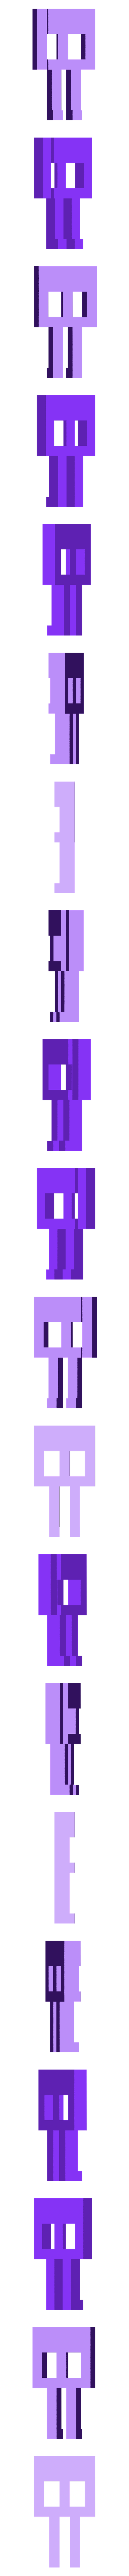 Knight_Skeleton_Body.stl Download free STL file Complete Minecraft Chess Set • Model to 3D print, Hardcore3D